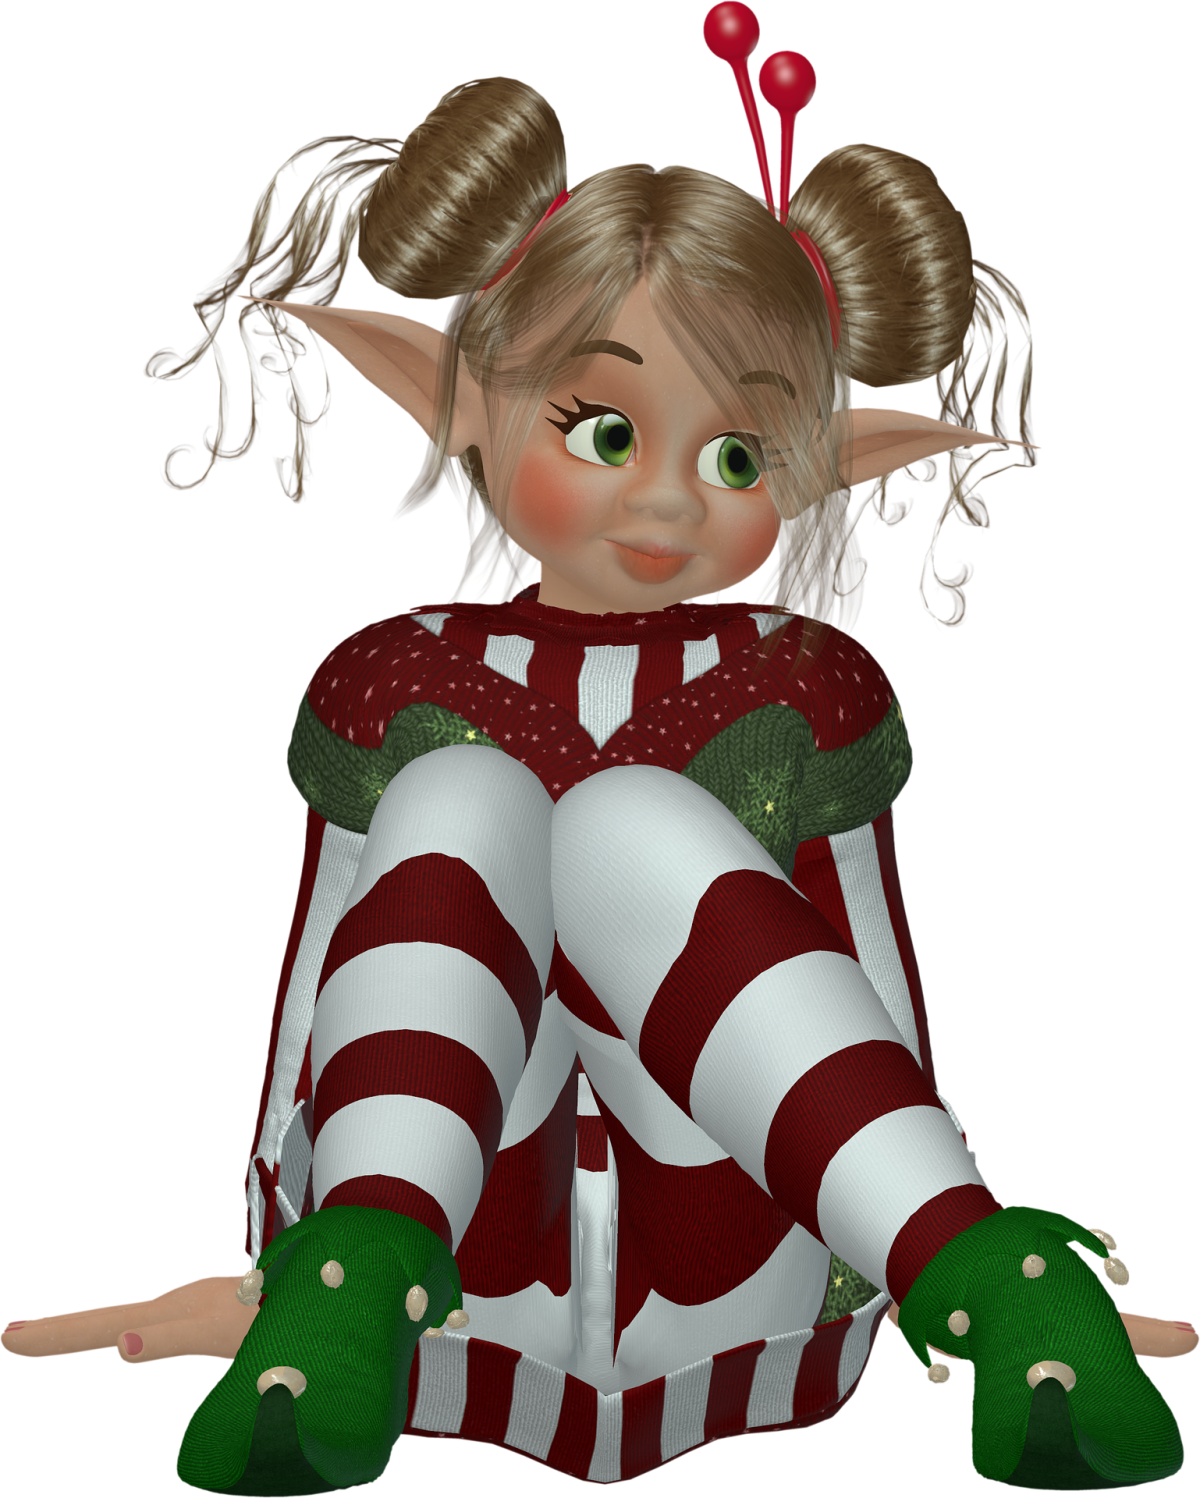 Dances with elves – Room 101